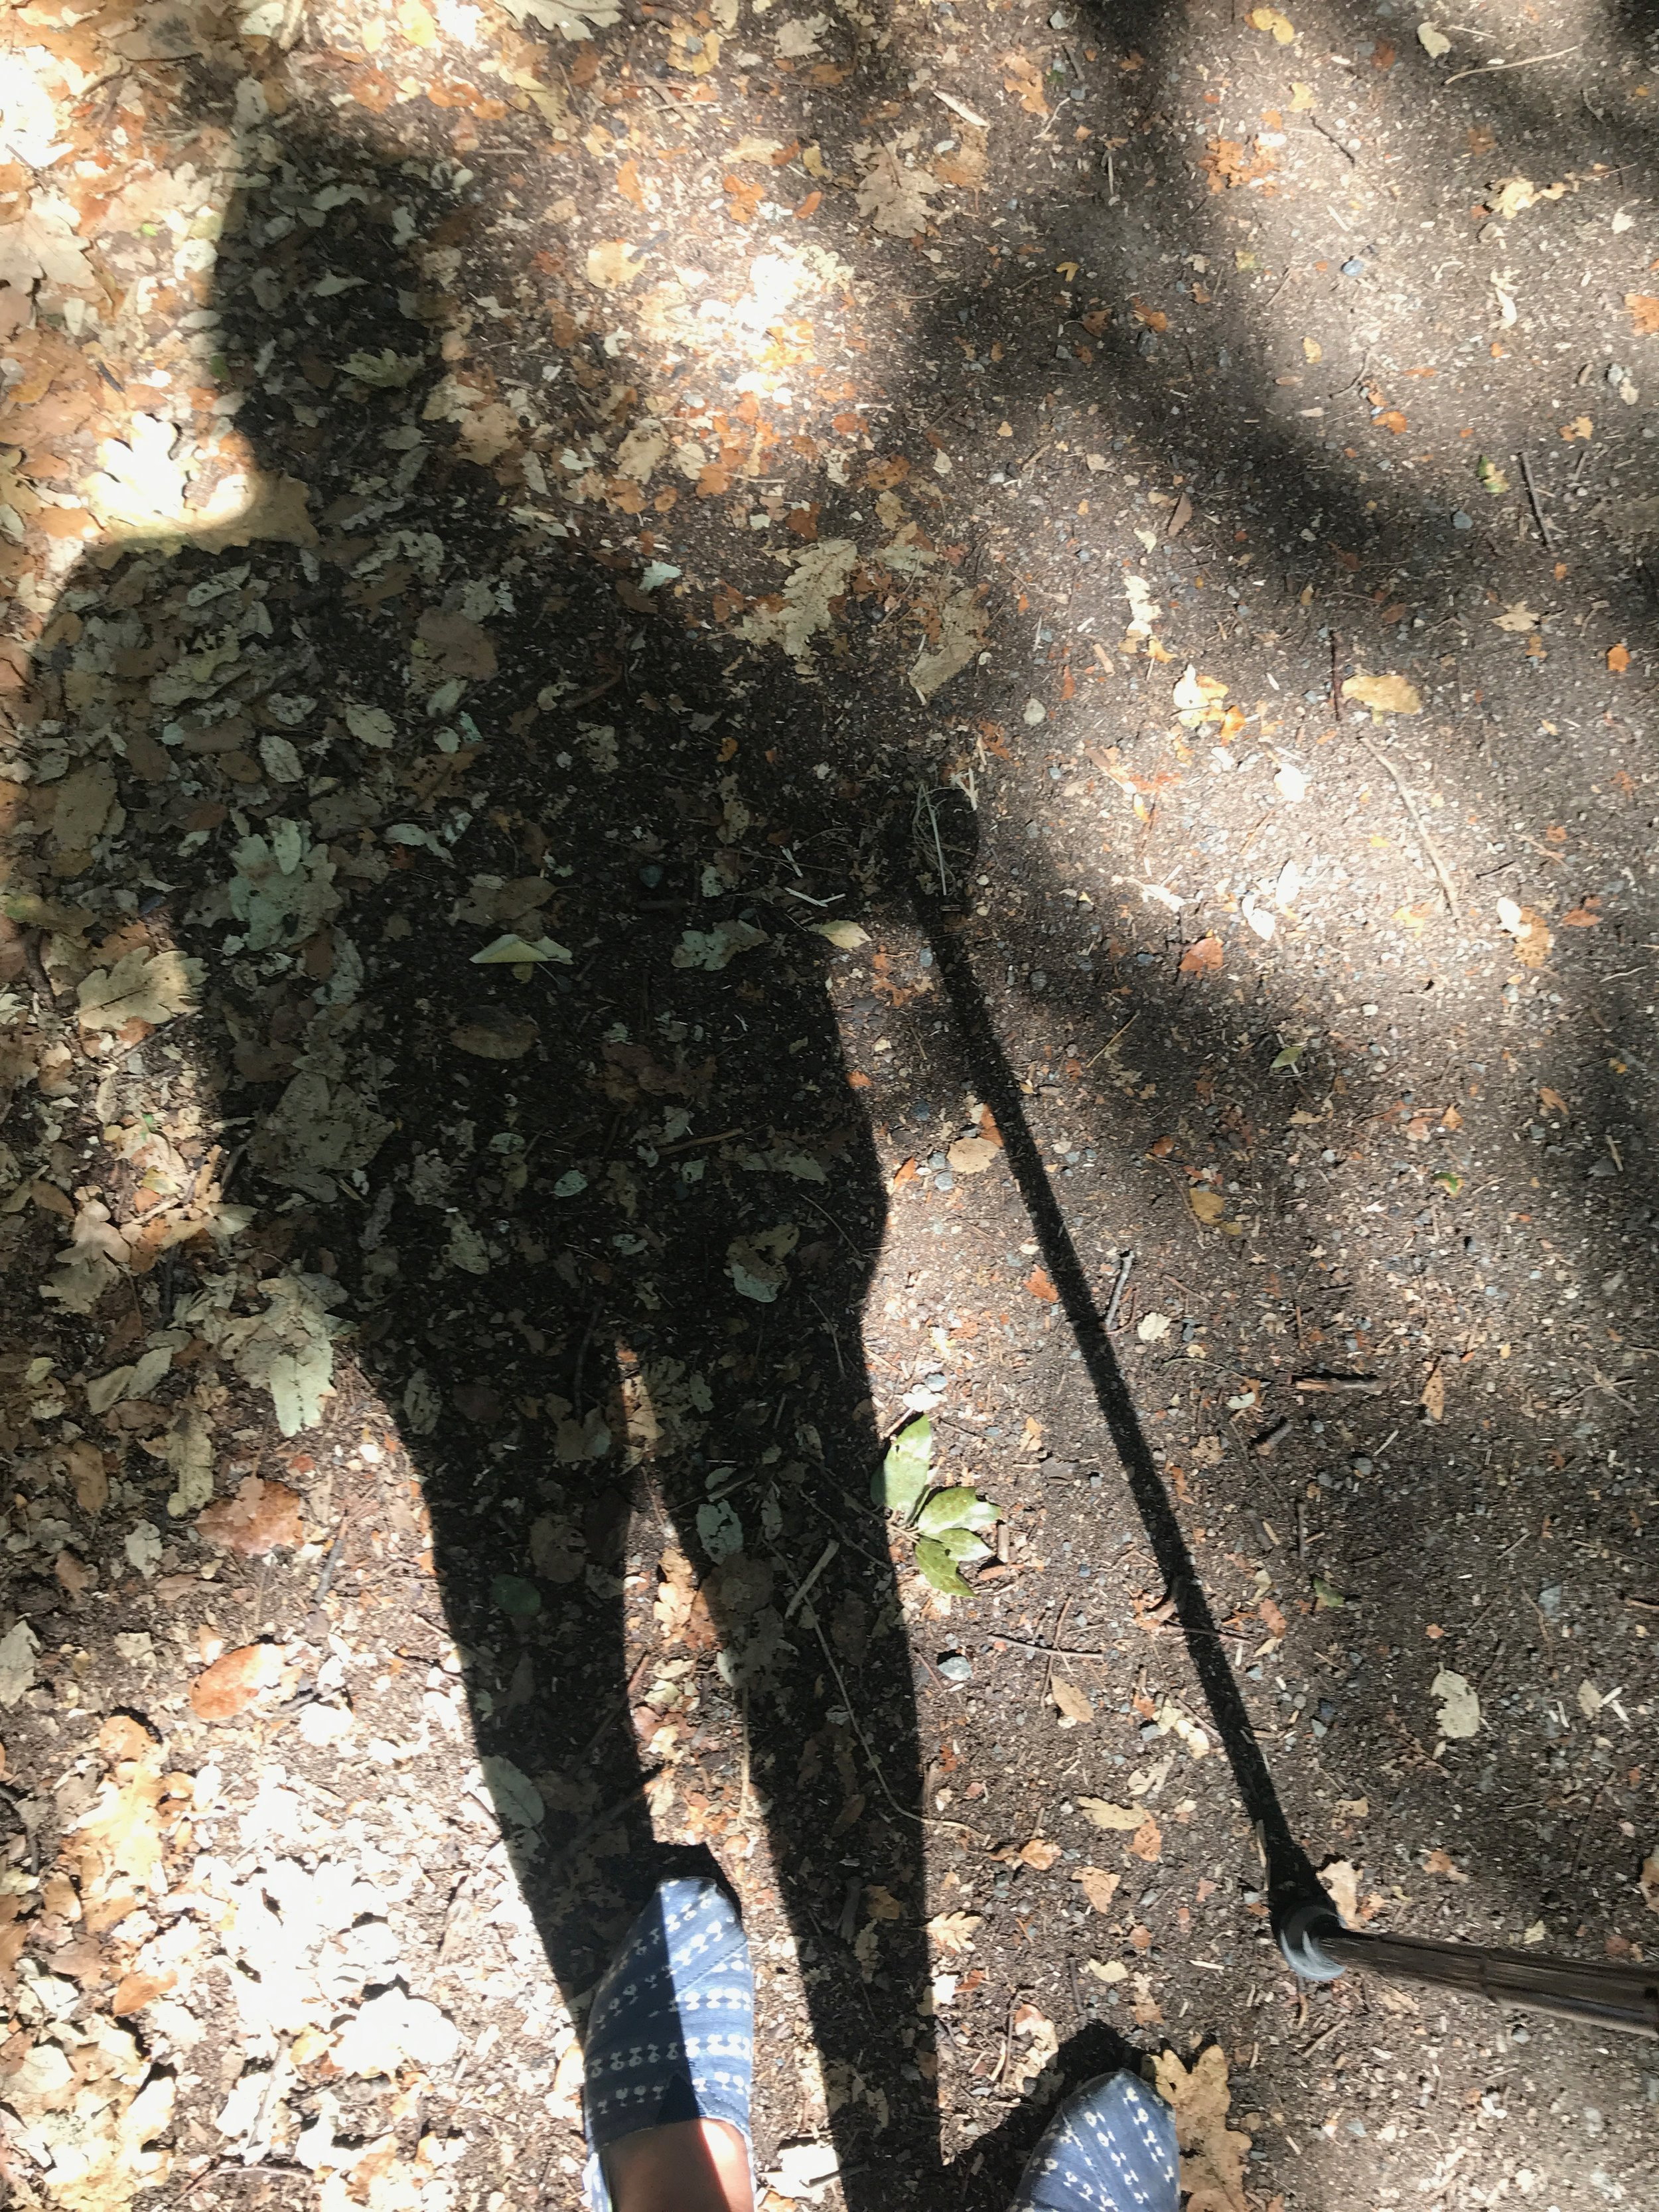 shadow of girl with walking stick in forest